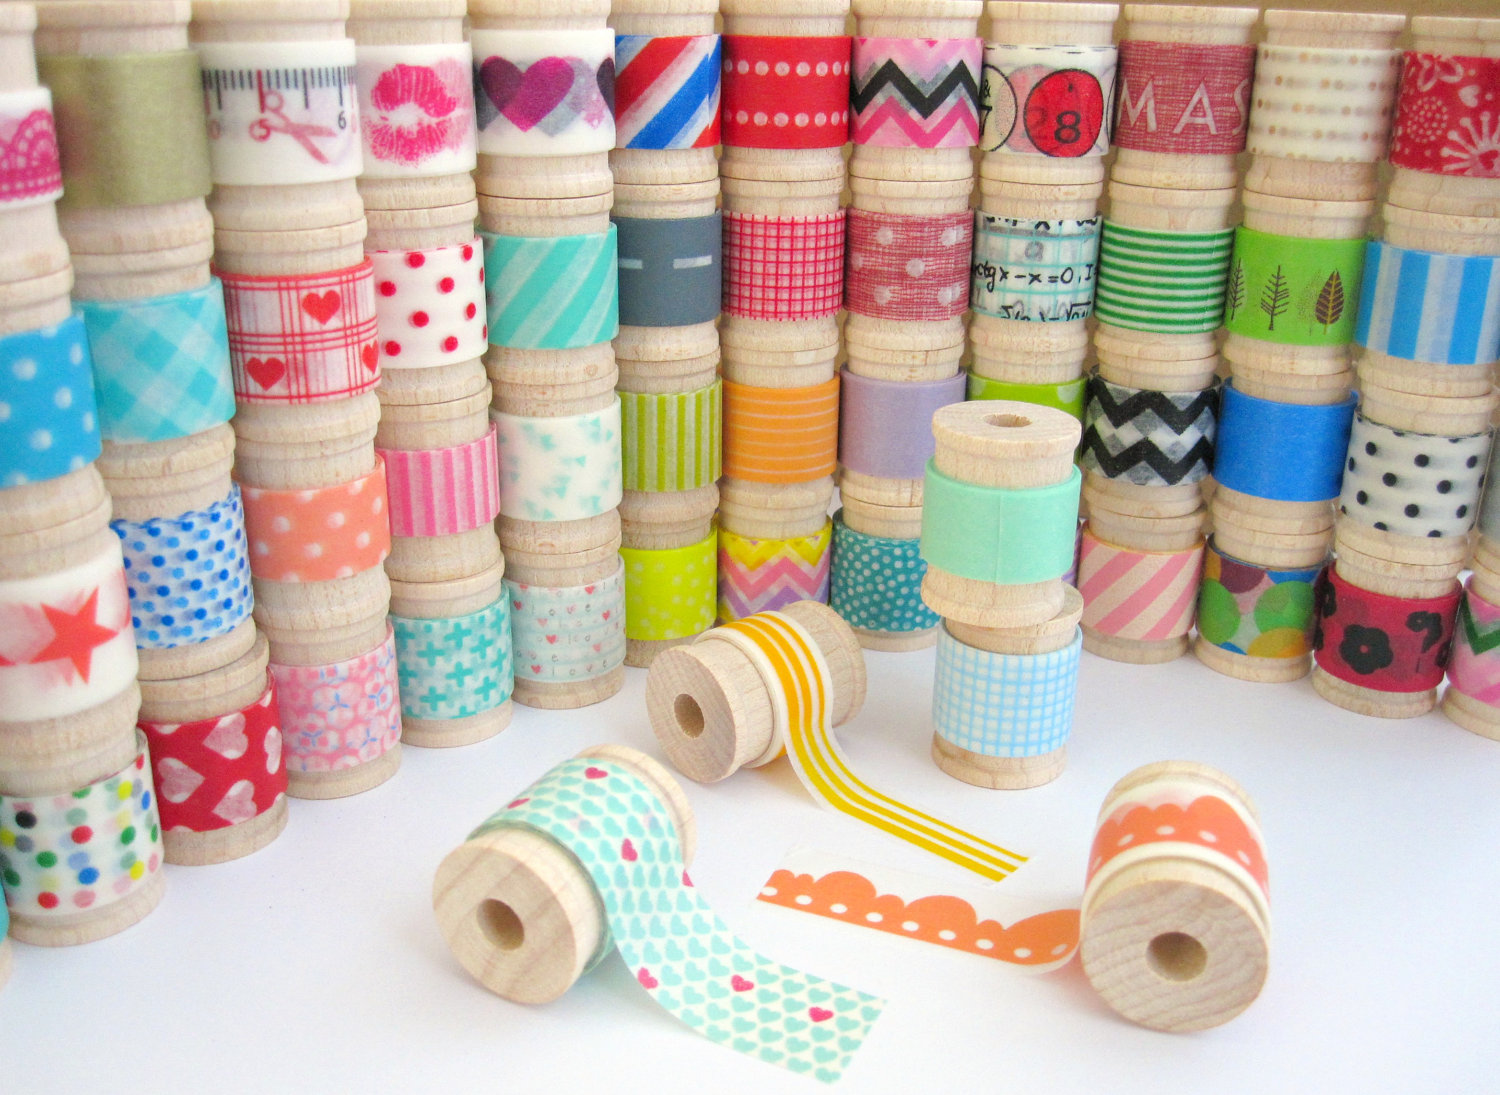 Decoracion Washi Tape ~ out Washi tape is decorative semi transparent Japanese masking tape